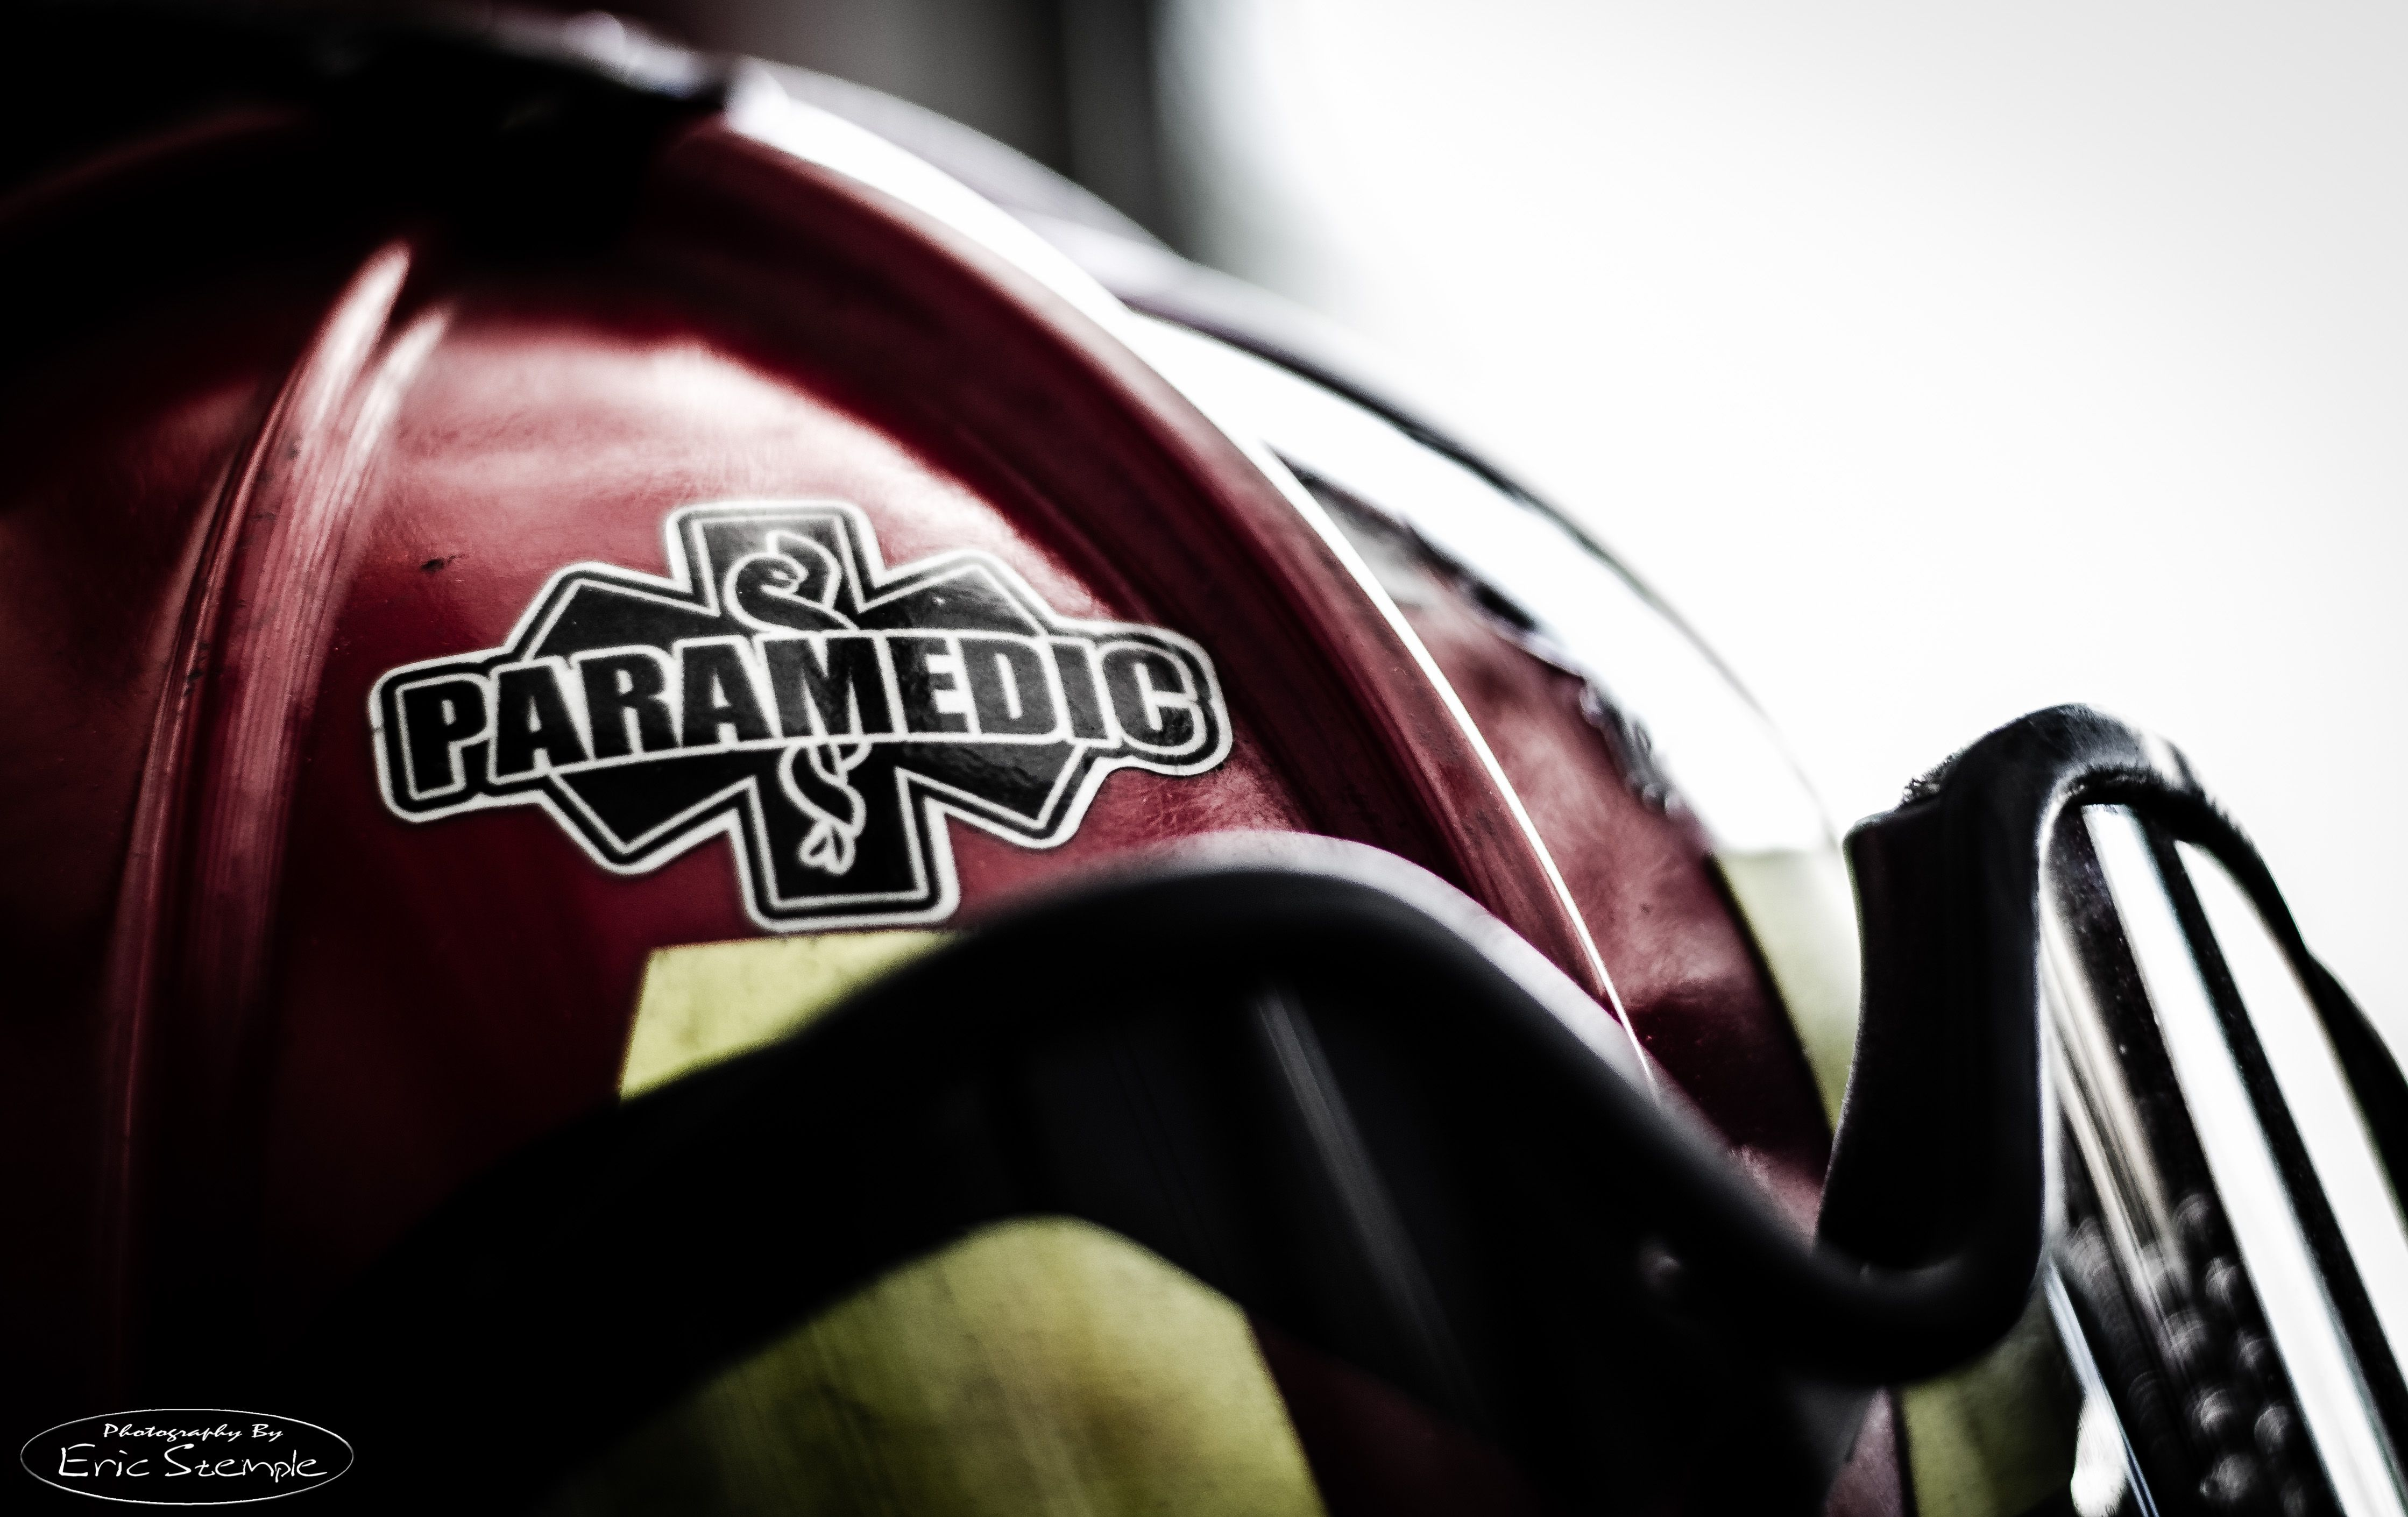 Want This Sticker For My Helmet Someday Paramedic Emt Paramedic Firefighter Paramedic